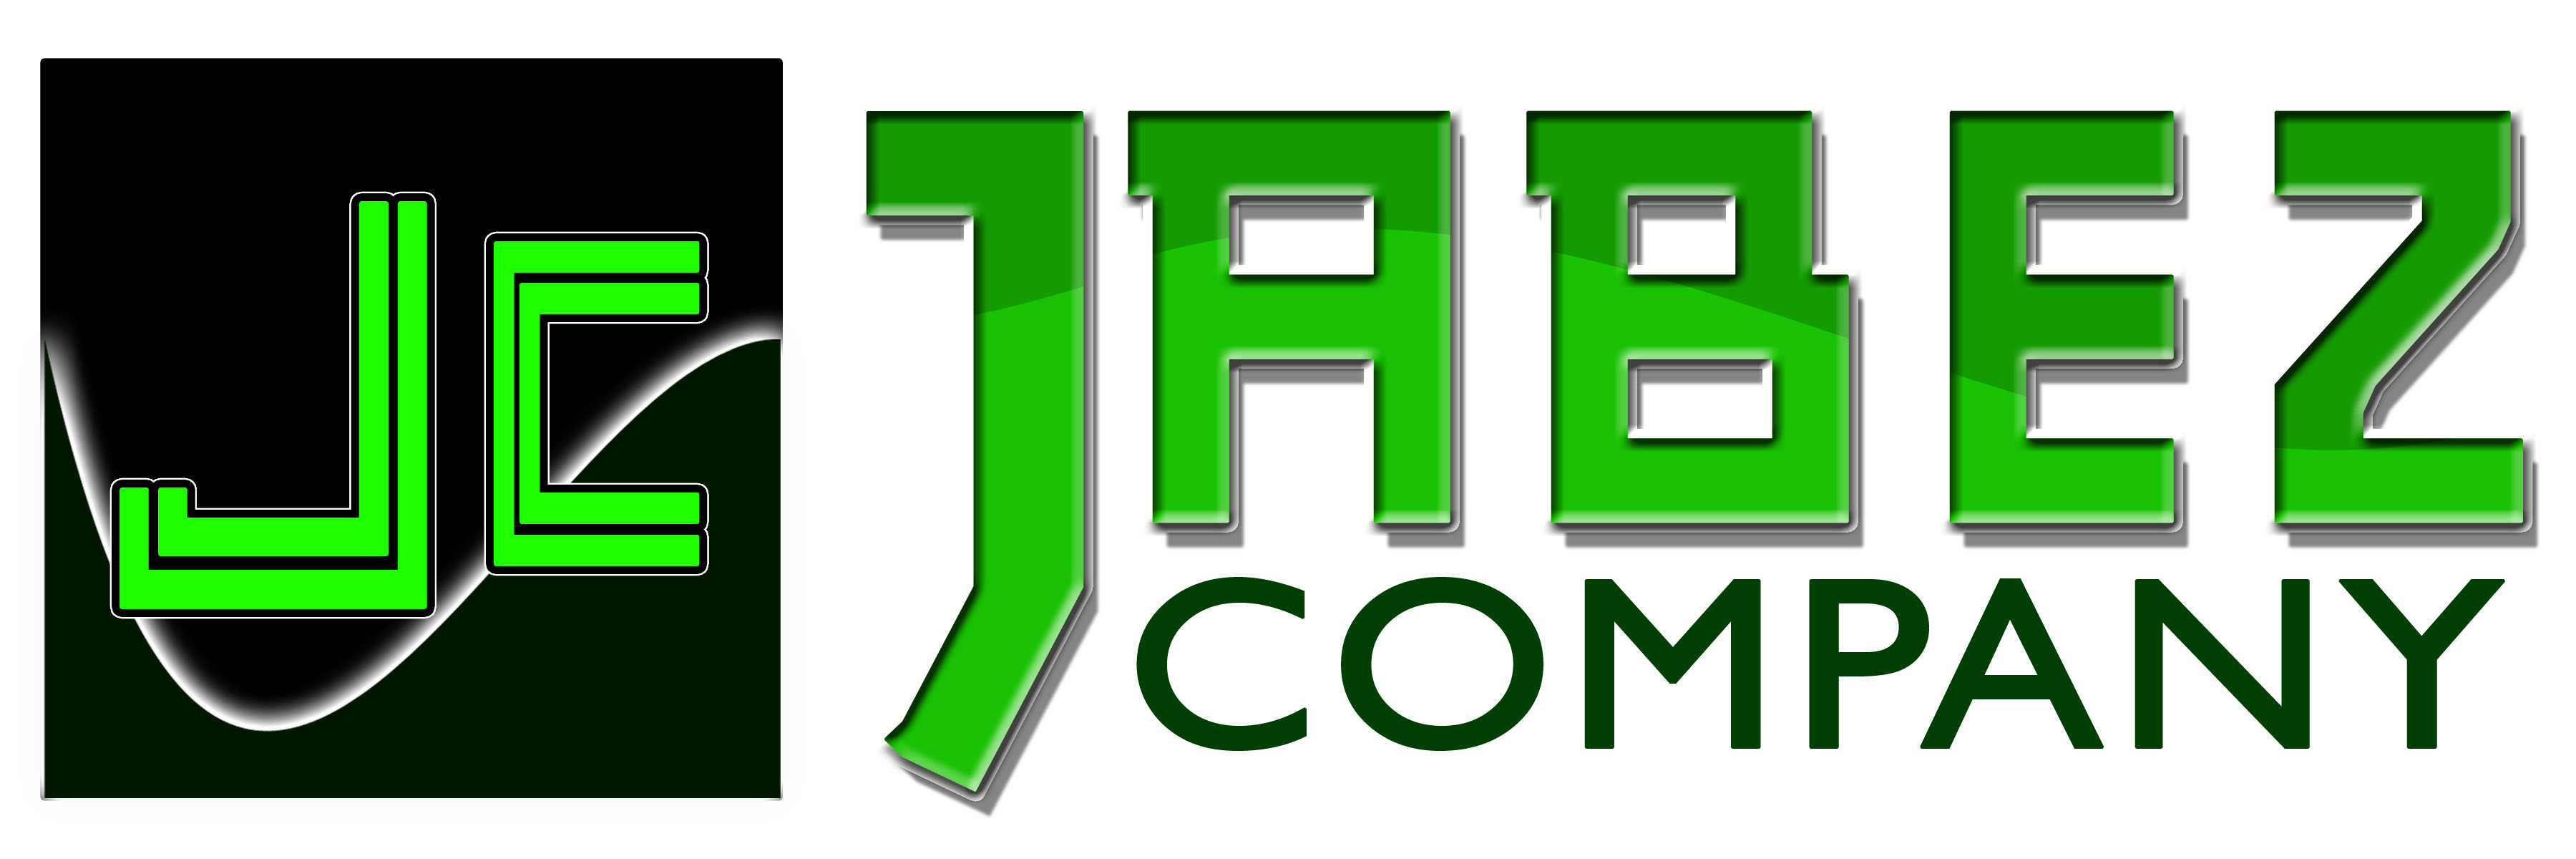 Logo Design by Davy Jones Estrellanes - Entry No. 72 in the Logo Design Contest New Logo Design for Jabez Compnay, LLC.